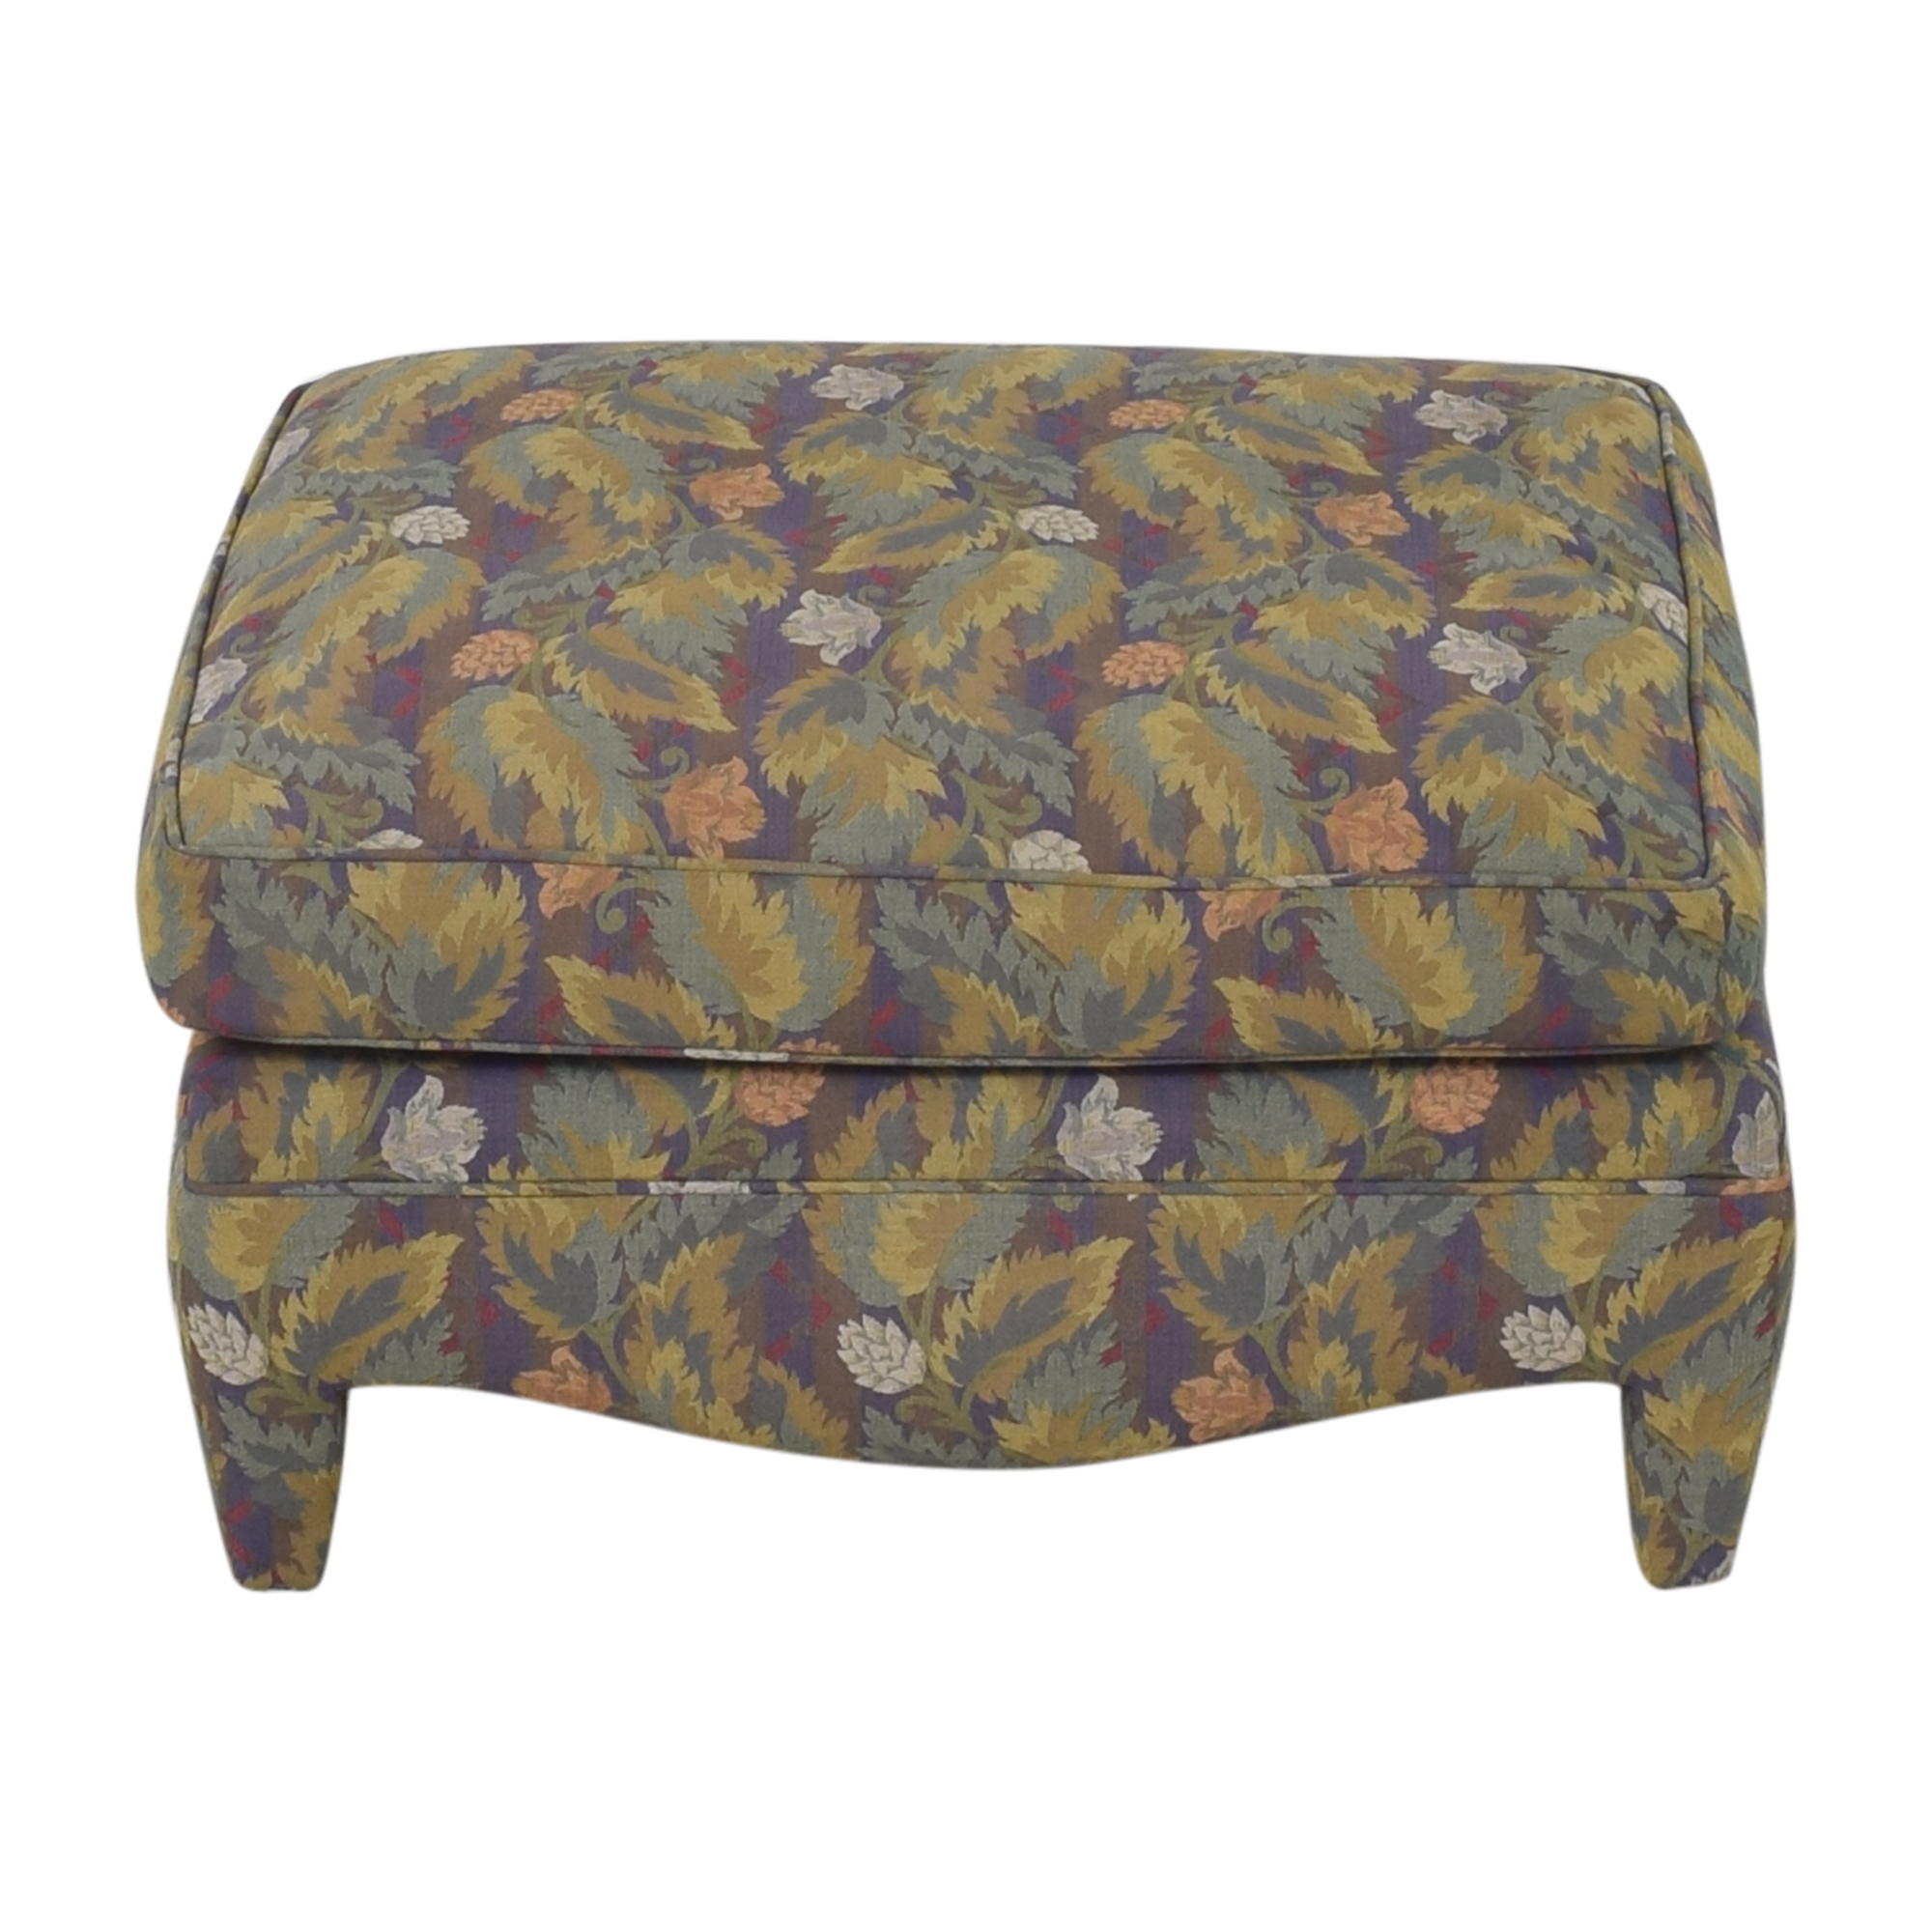 Donghia Donghia Floral Ottoman used